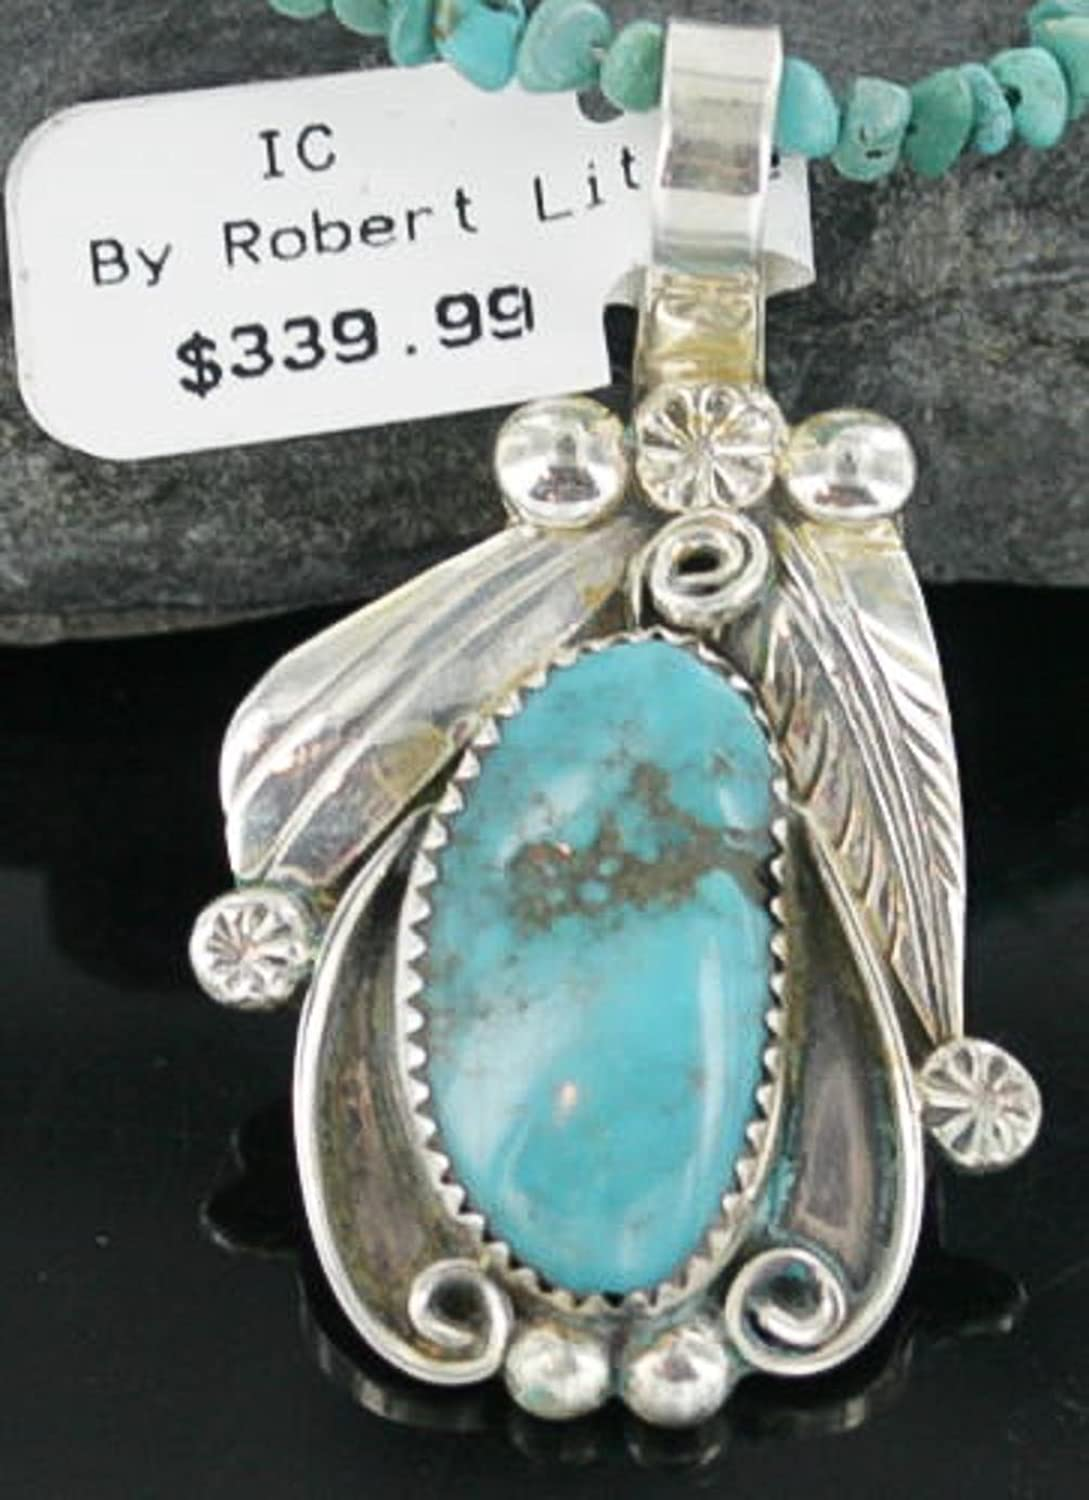 $520 Retail Tag Handmade Authentic Made by Robert Little Navajo Silver Natural Turquoise Native American Necklace